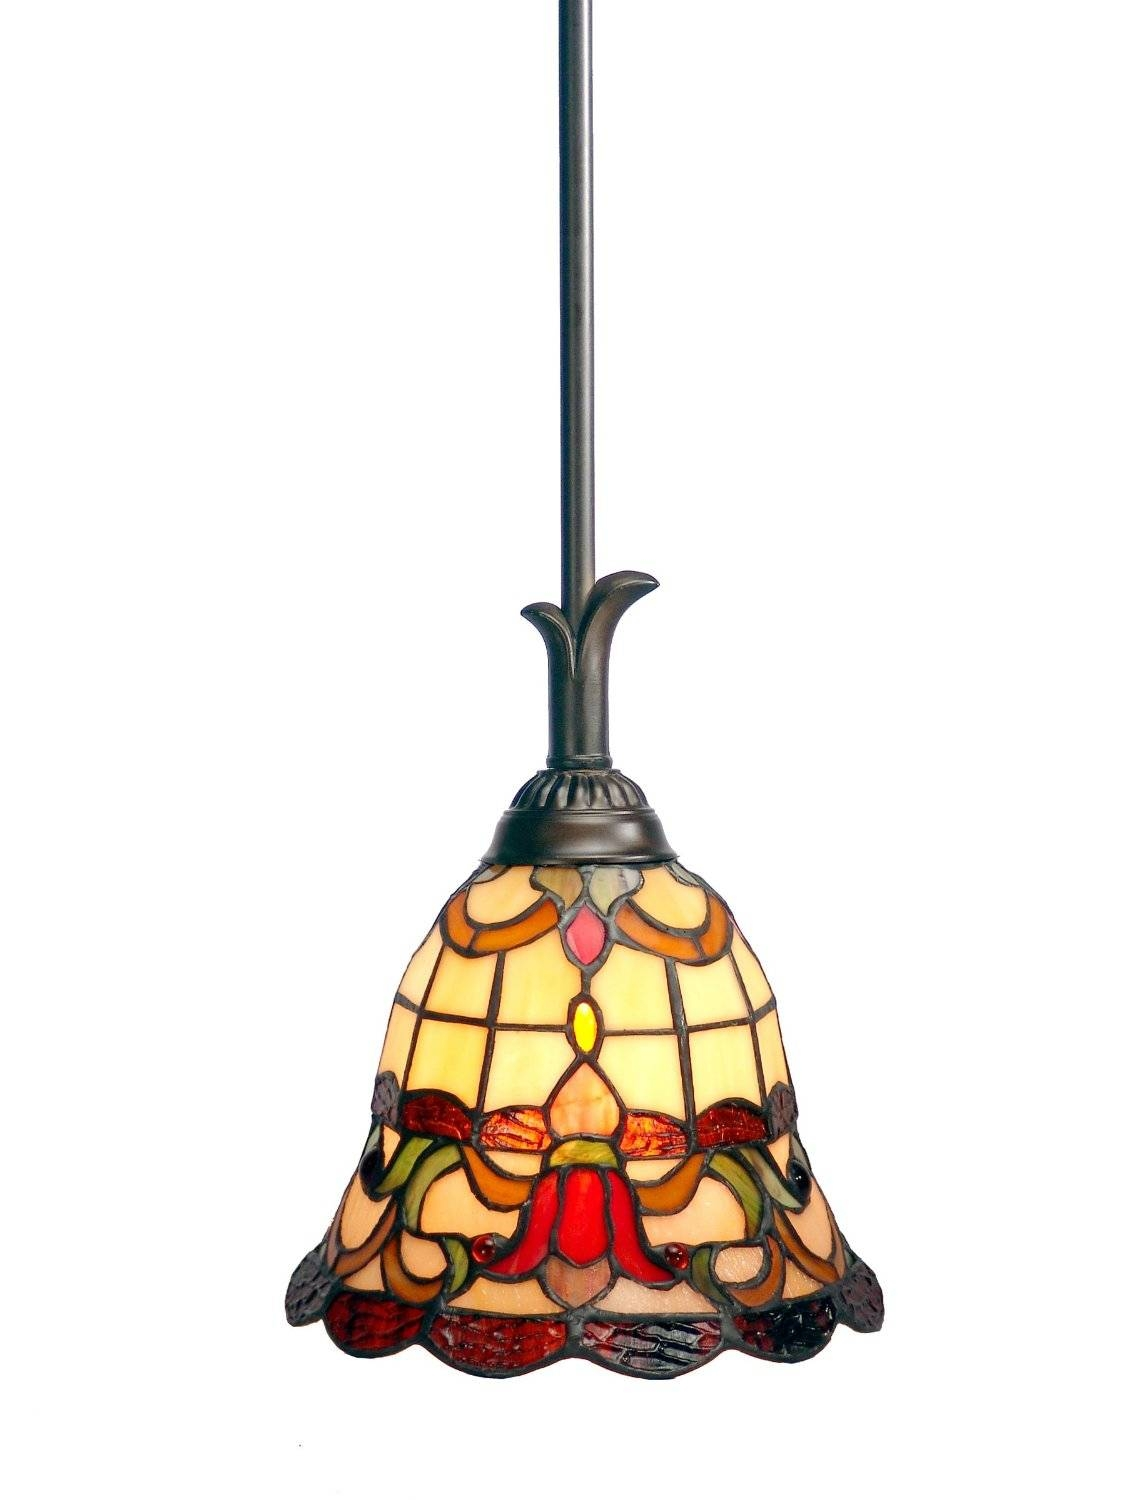 Lighting Design : Stained Glass Pendant Lamp Shade Patterns Regarding Stained Glass Pendant Lights Patterns (View 3 of 15)